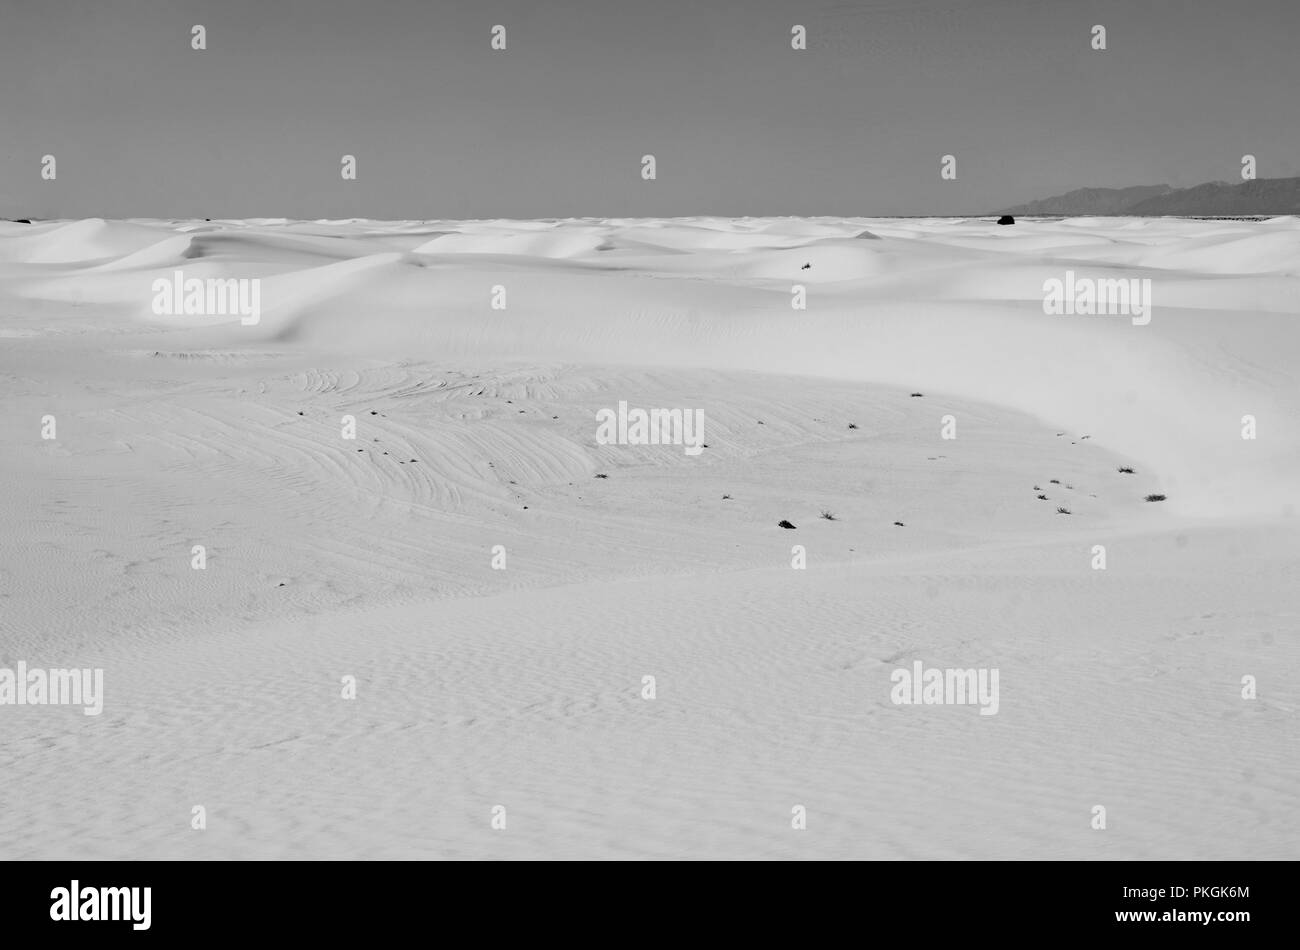 White Sands National Monument, New Mexico, USA - Stock Image